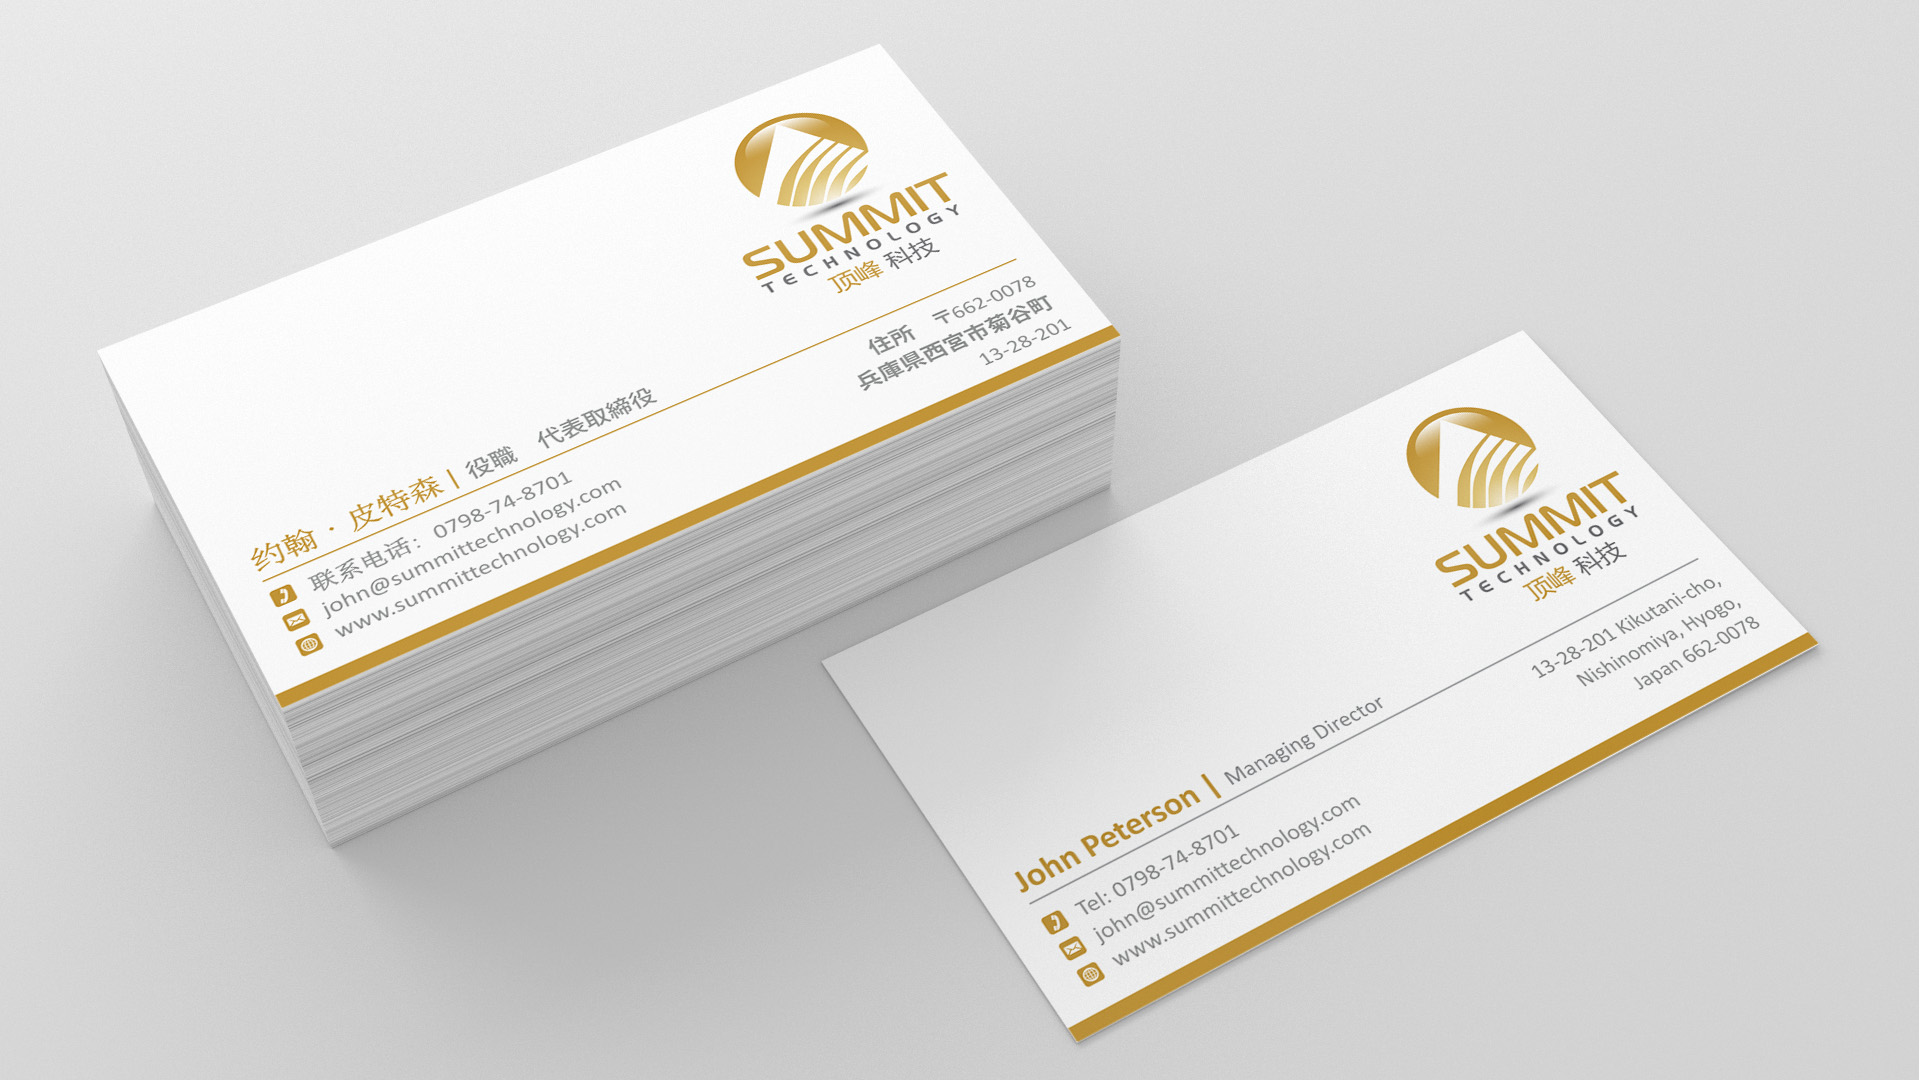 Business Card Design Contests » Creative Business Card Design for ...